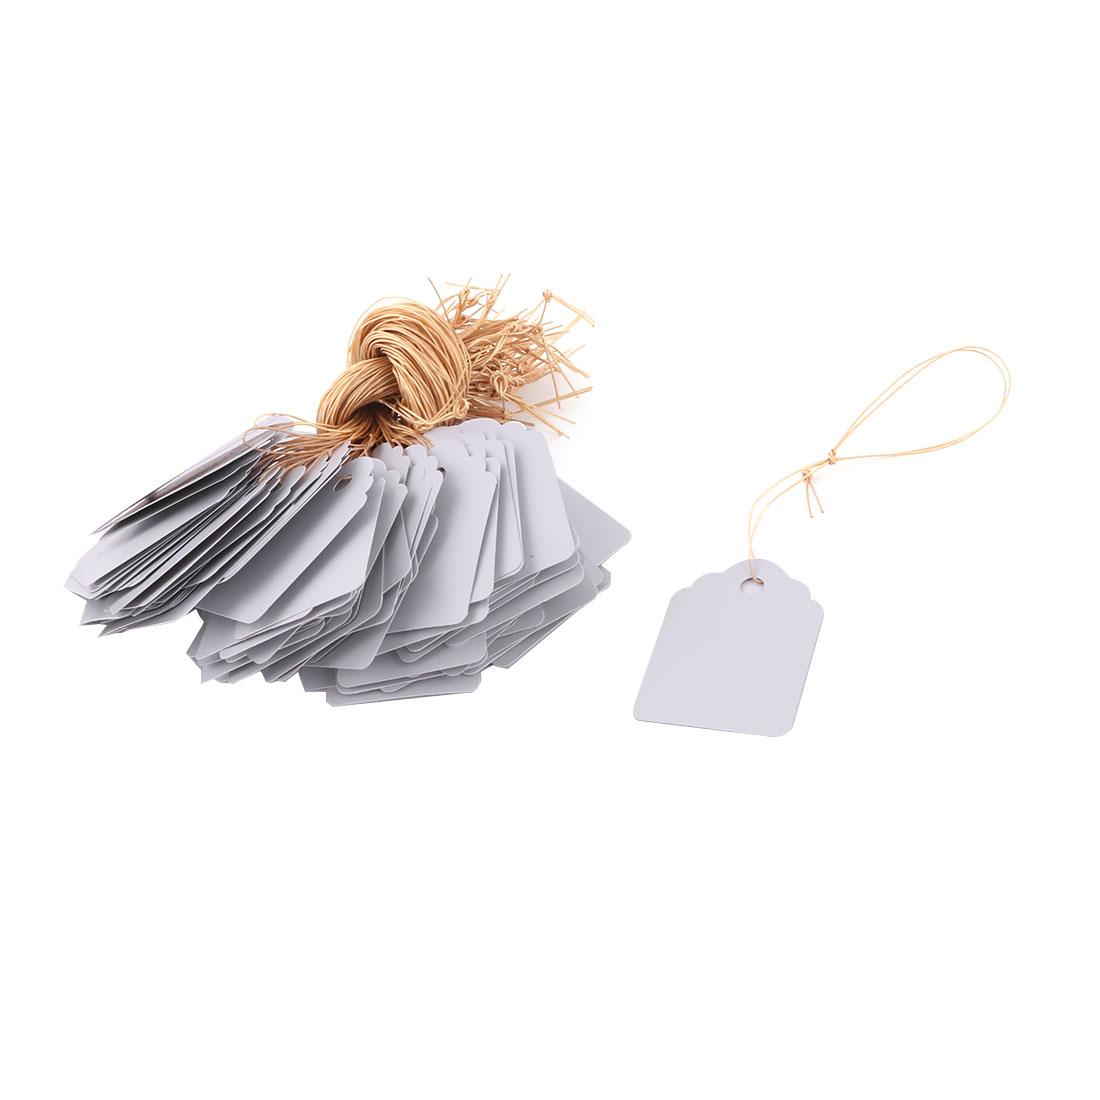 Garden Yard Plastic Plant Flower Seed Hanging Name Tag Label Marker White 100pcs